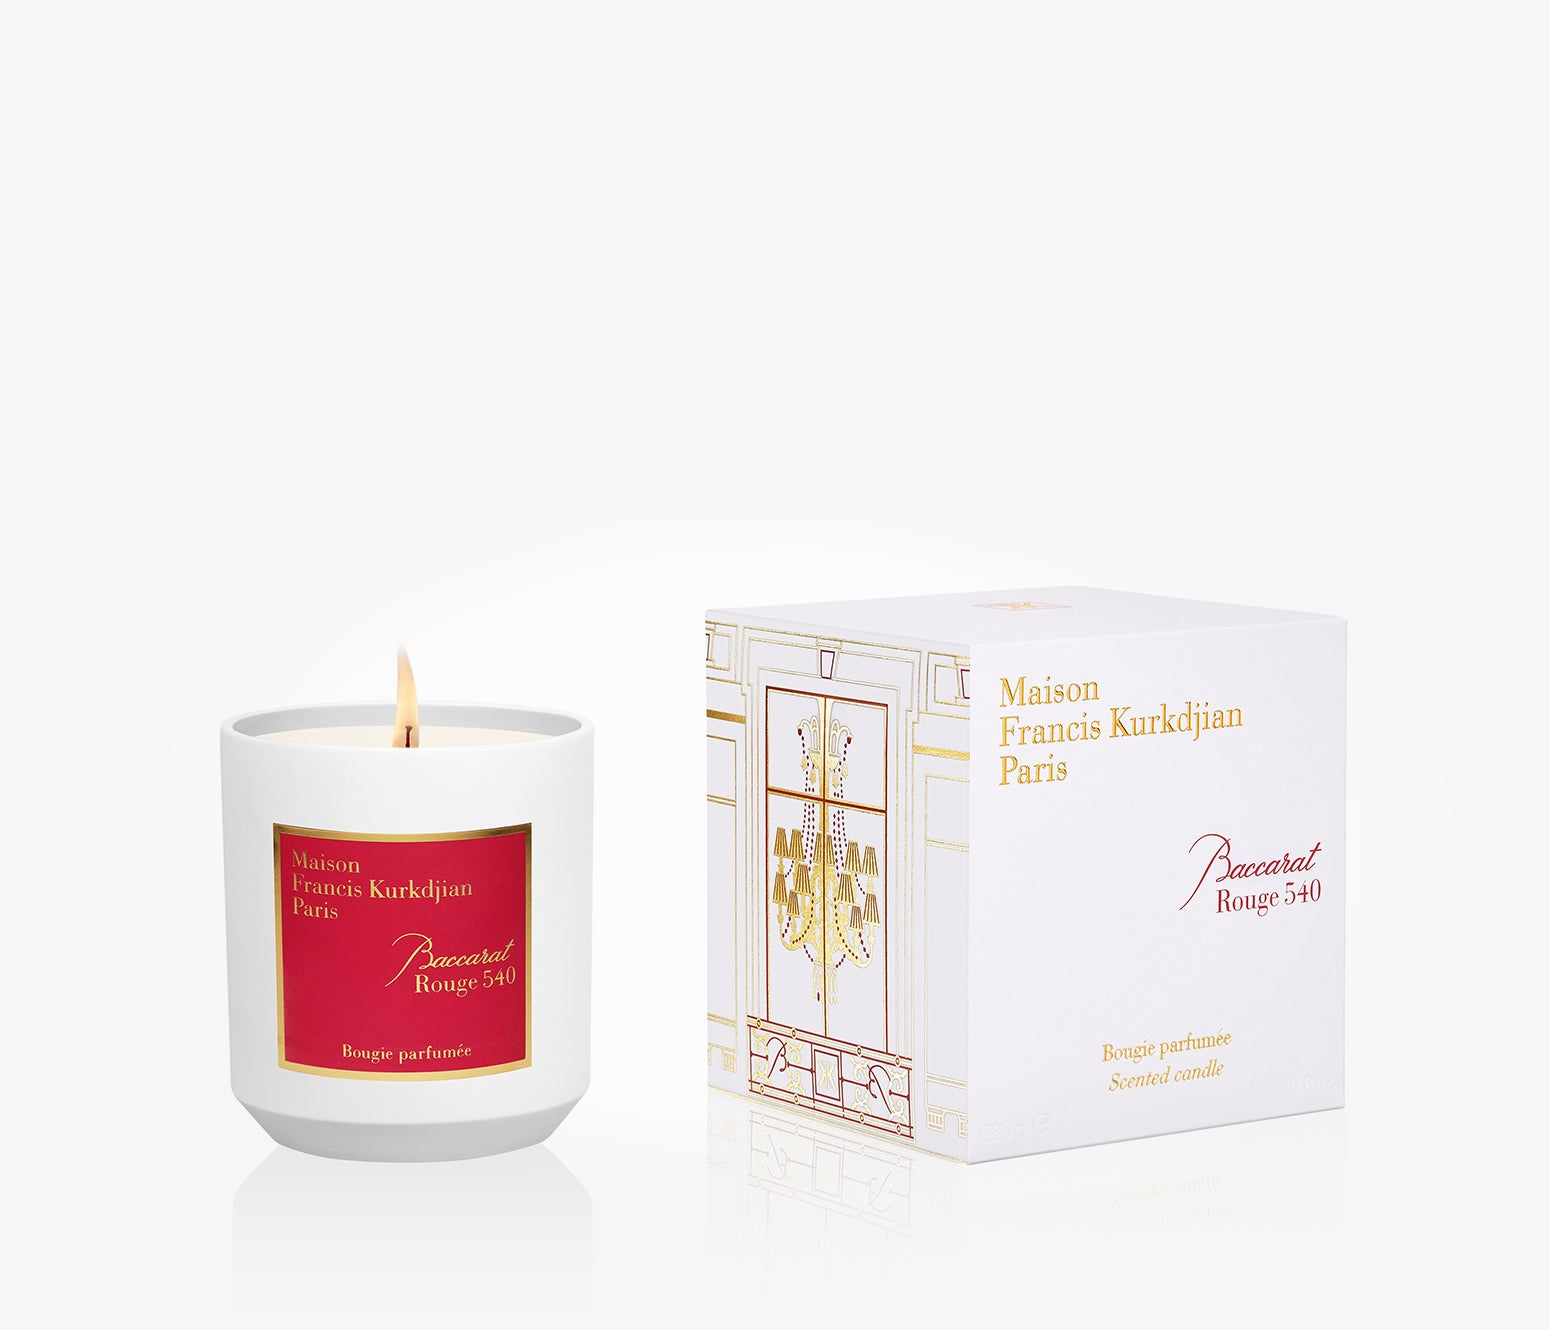 Maison Francis Kurkdjian - Baccarat Rouge 540 Candle - 280g - GBA001 - product image - Candle - Les Senteurs